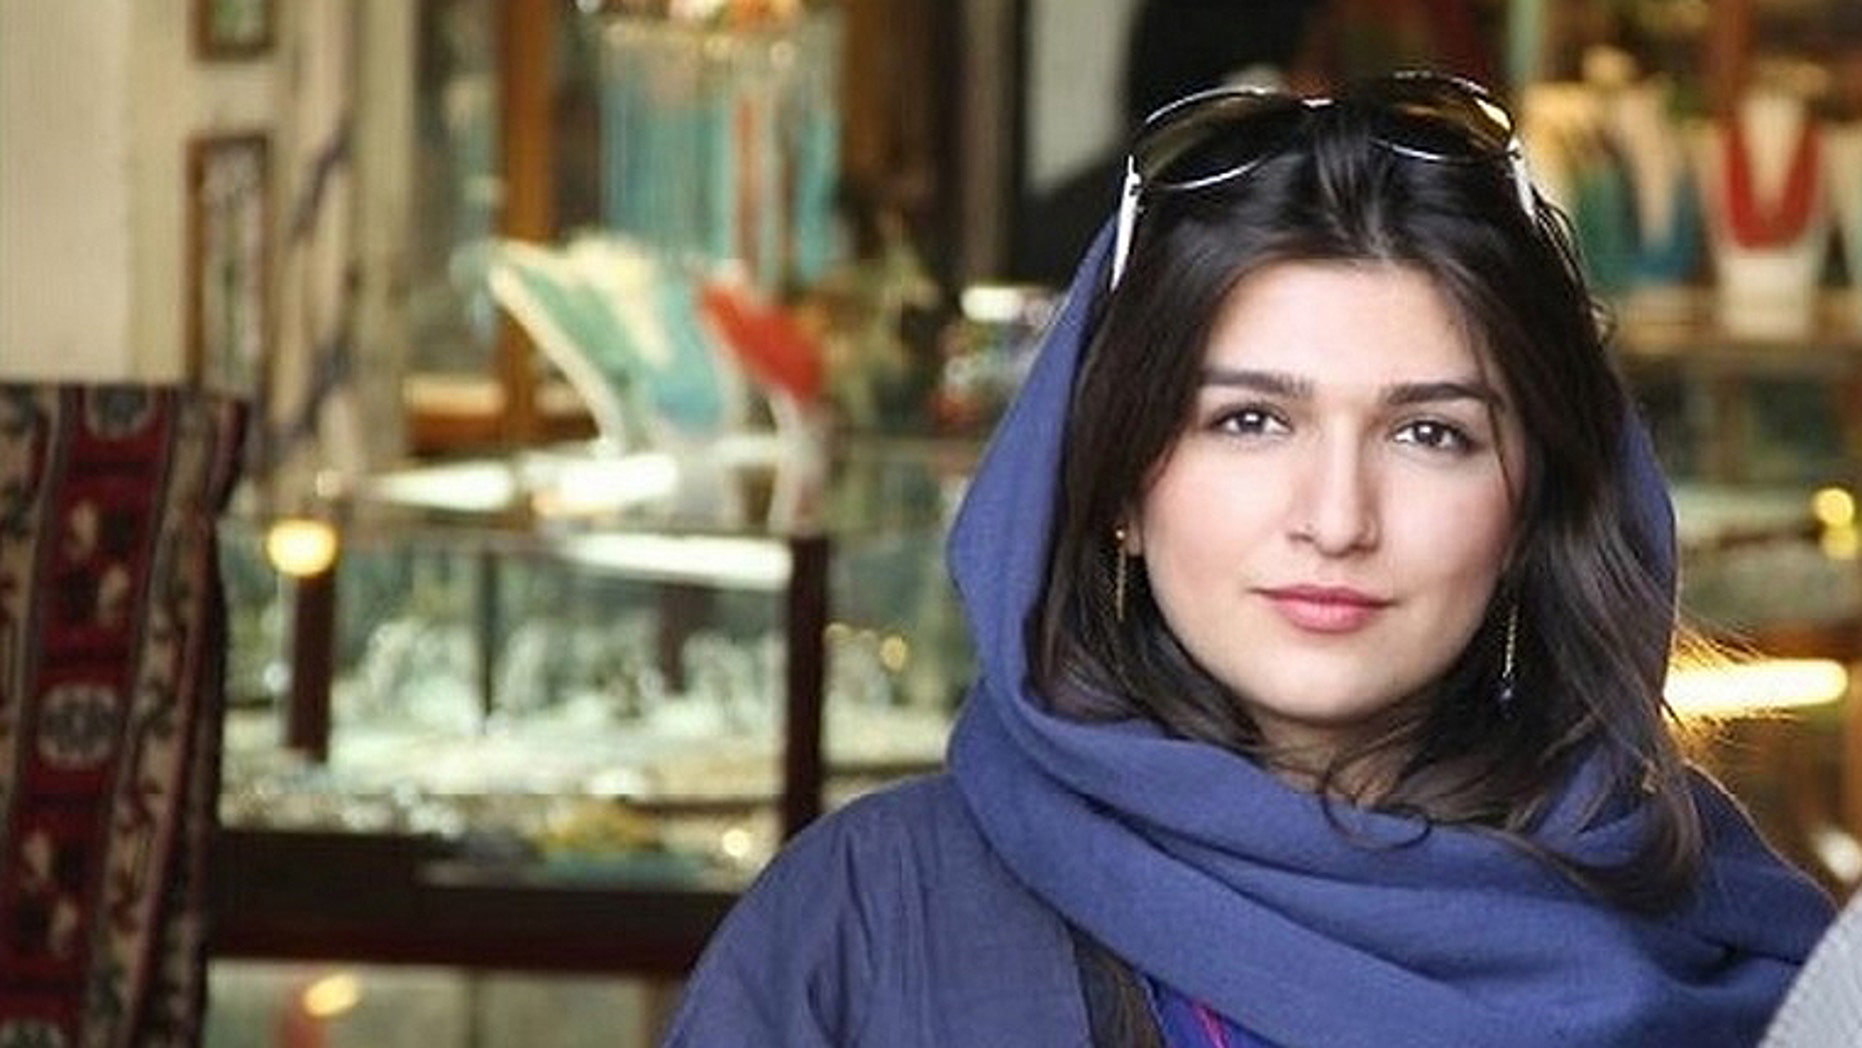 UK citizen Ghoncheh Ghavami was visiting family and working for a charity organization in Iran when she was arrested and imprisoned for attempting to attend a men-only volleyball match last June.